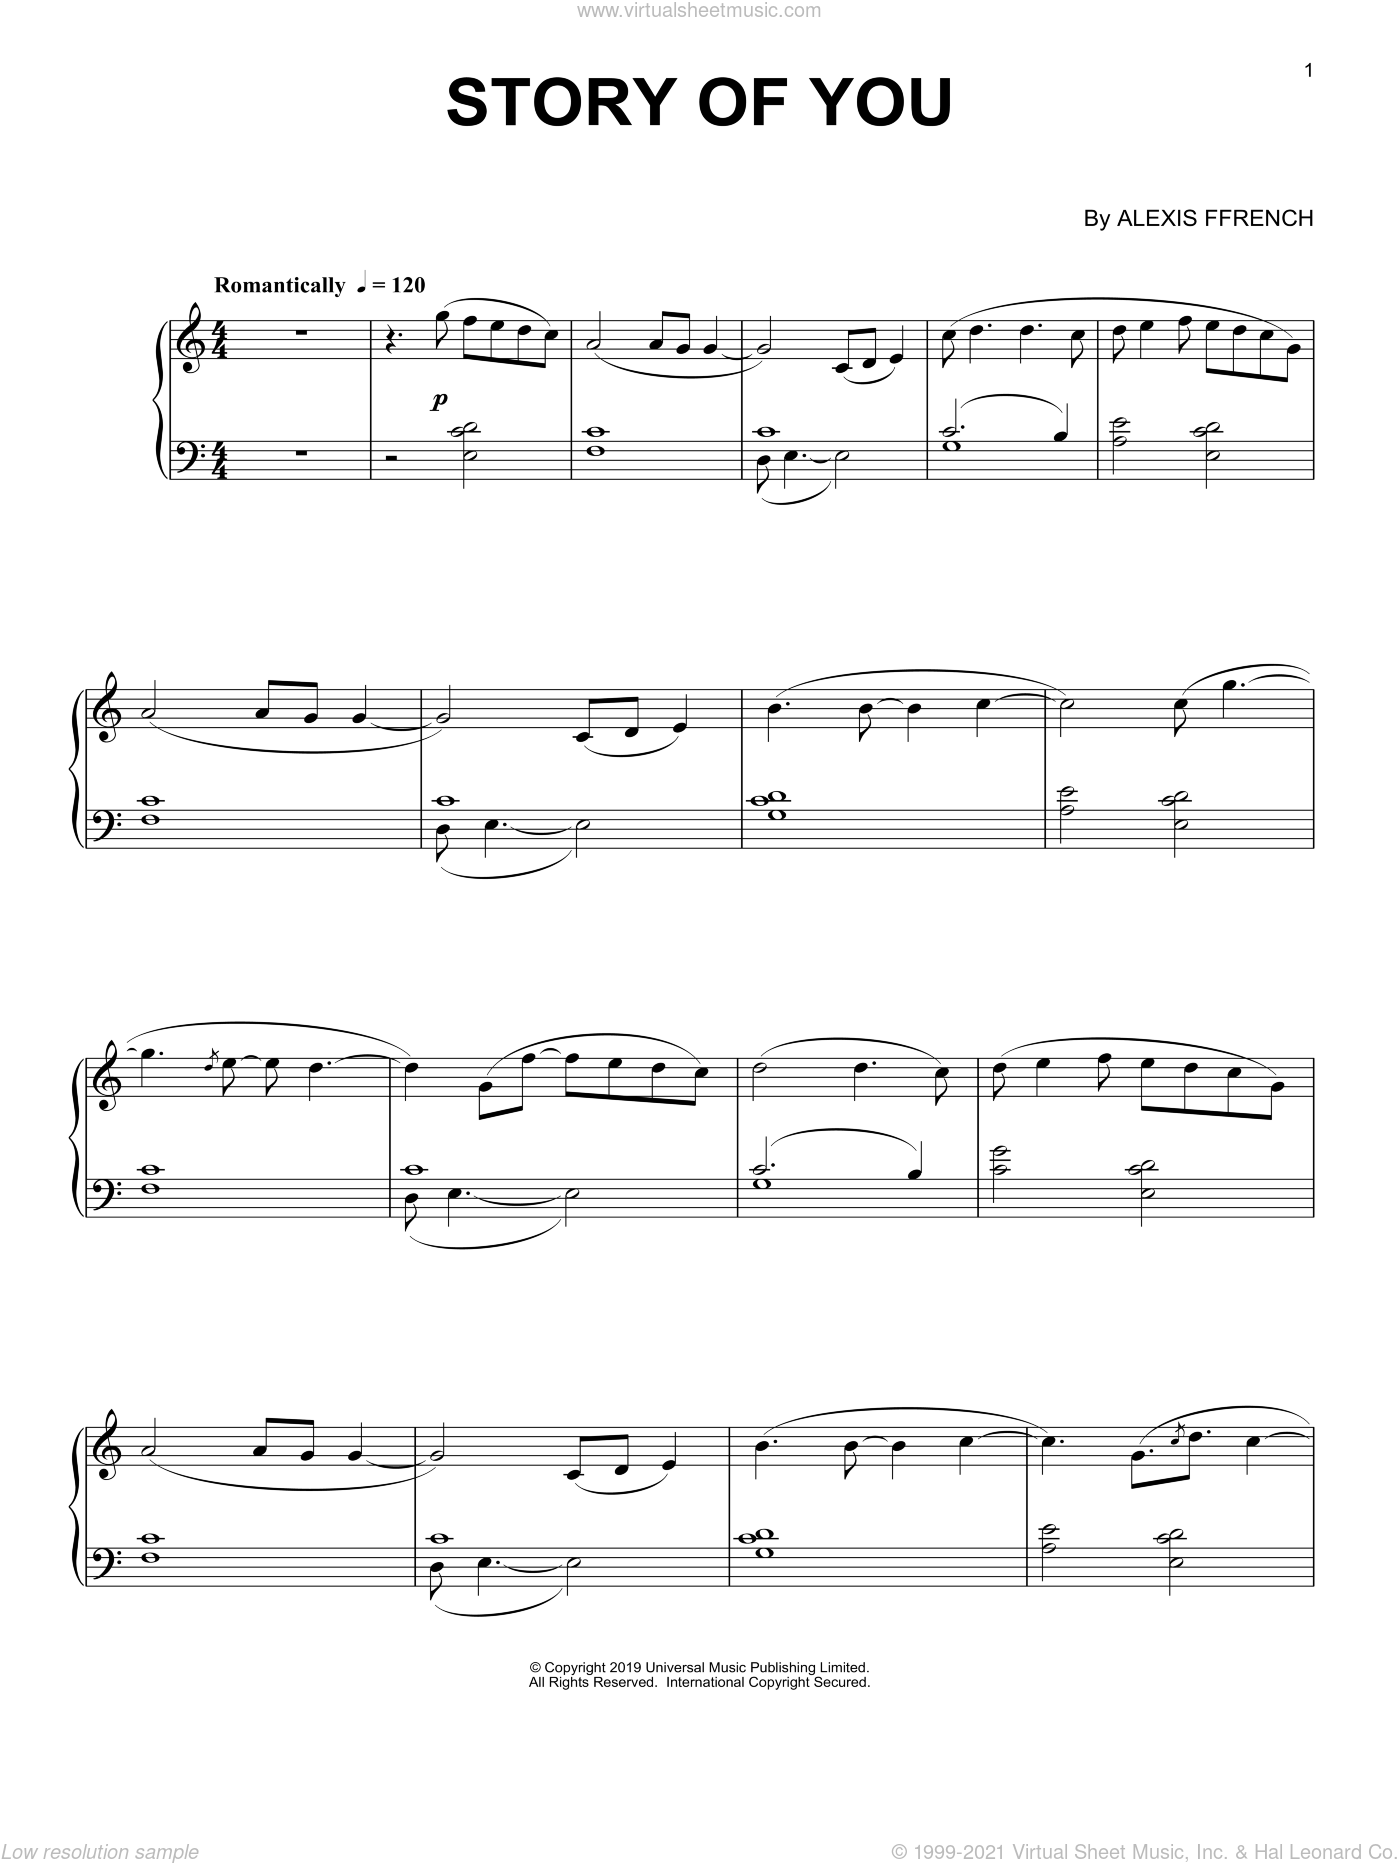 Story Of You sheet music for piano solo by Alexis Ffrench, classical score, intermediate skill level